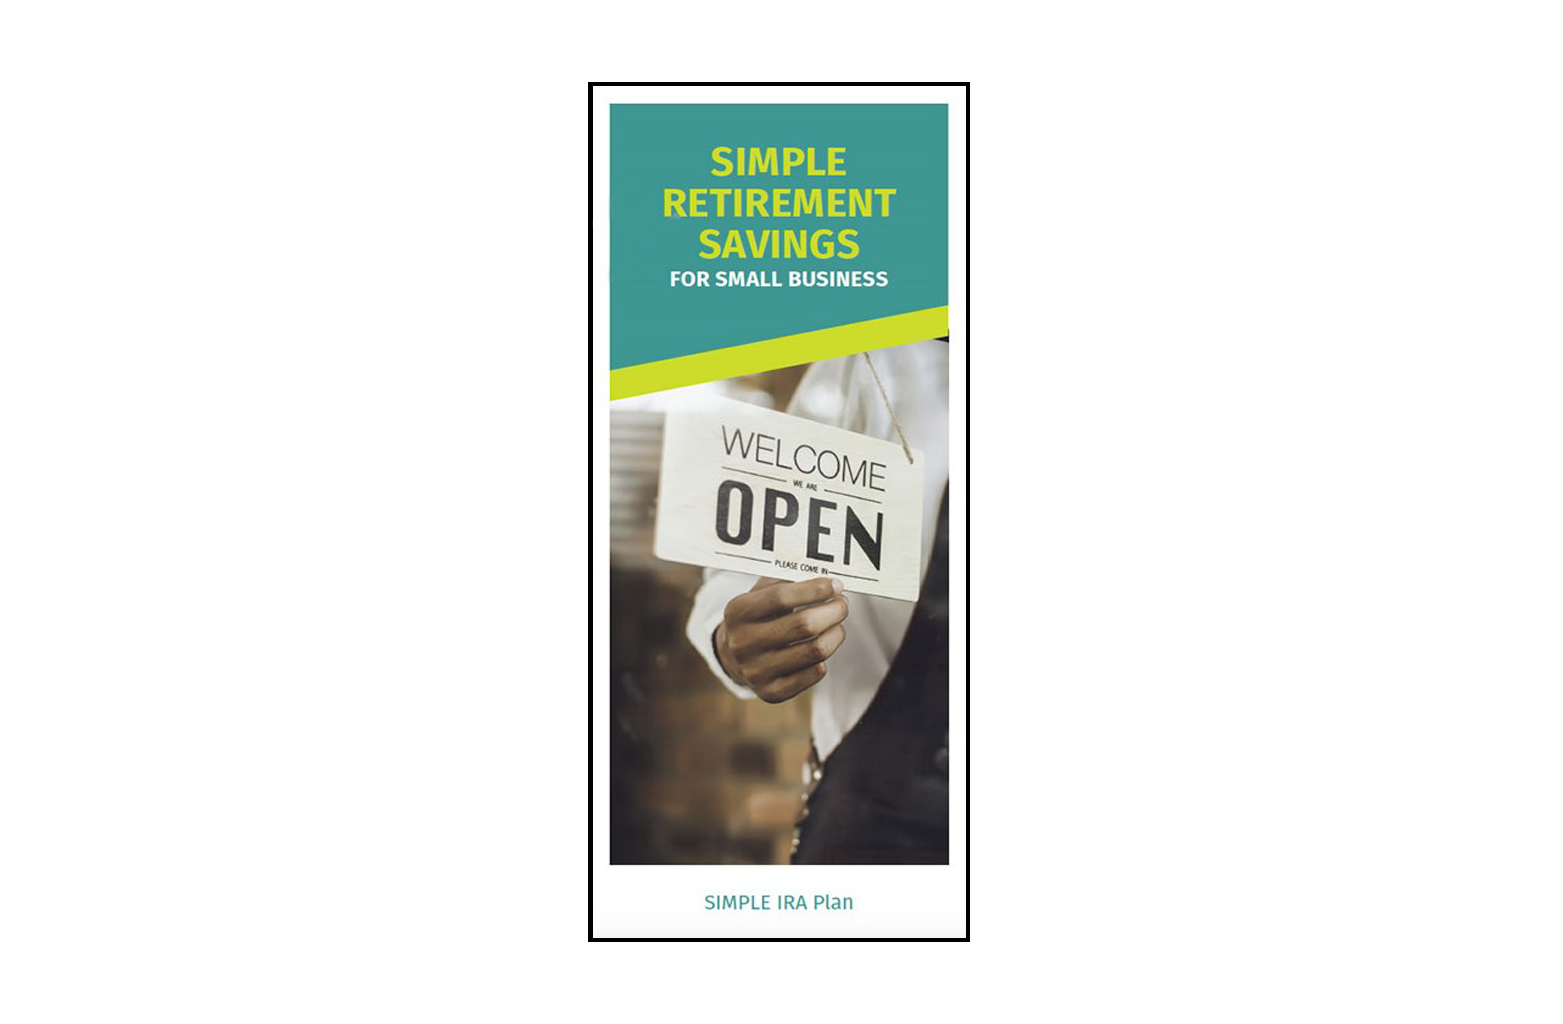 SIMPLE Retirement Savings for Small Business Brochure